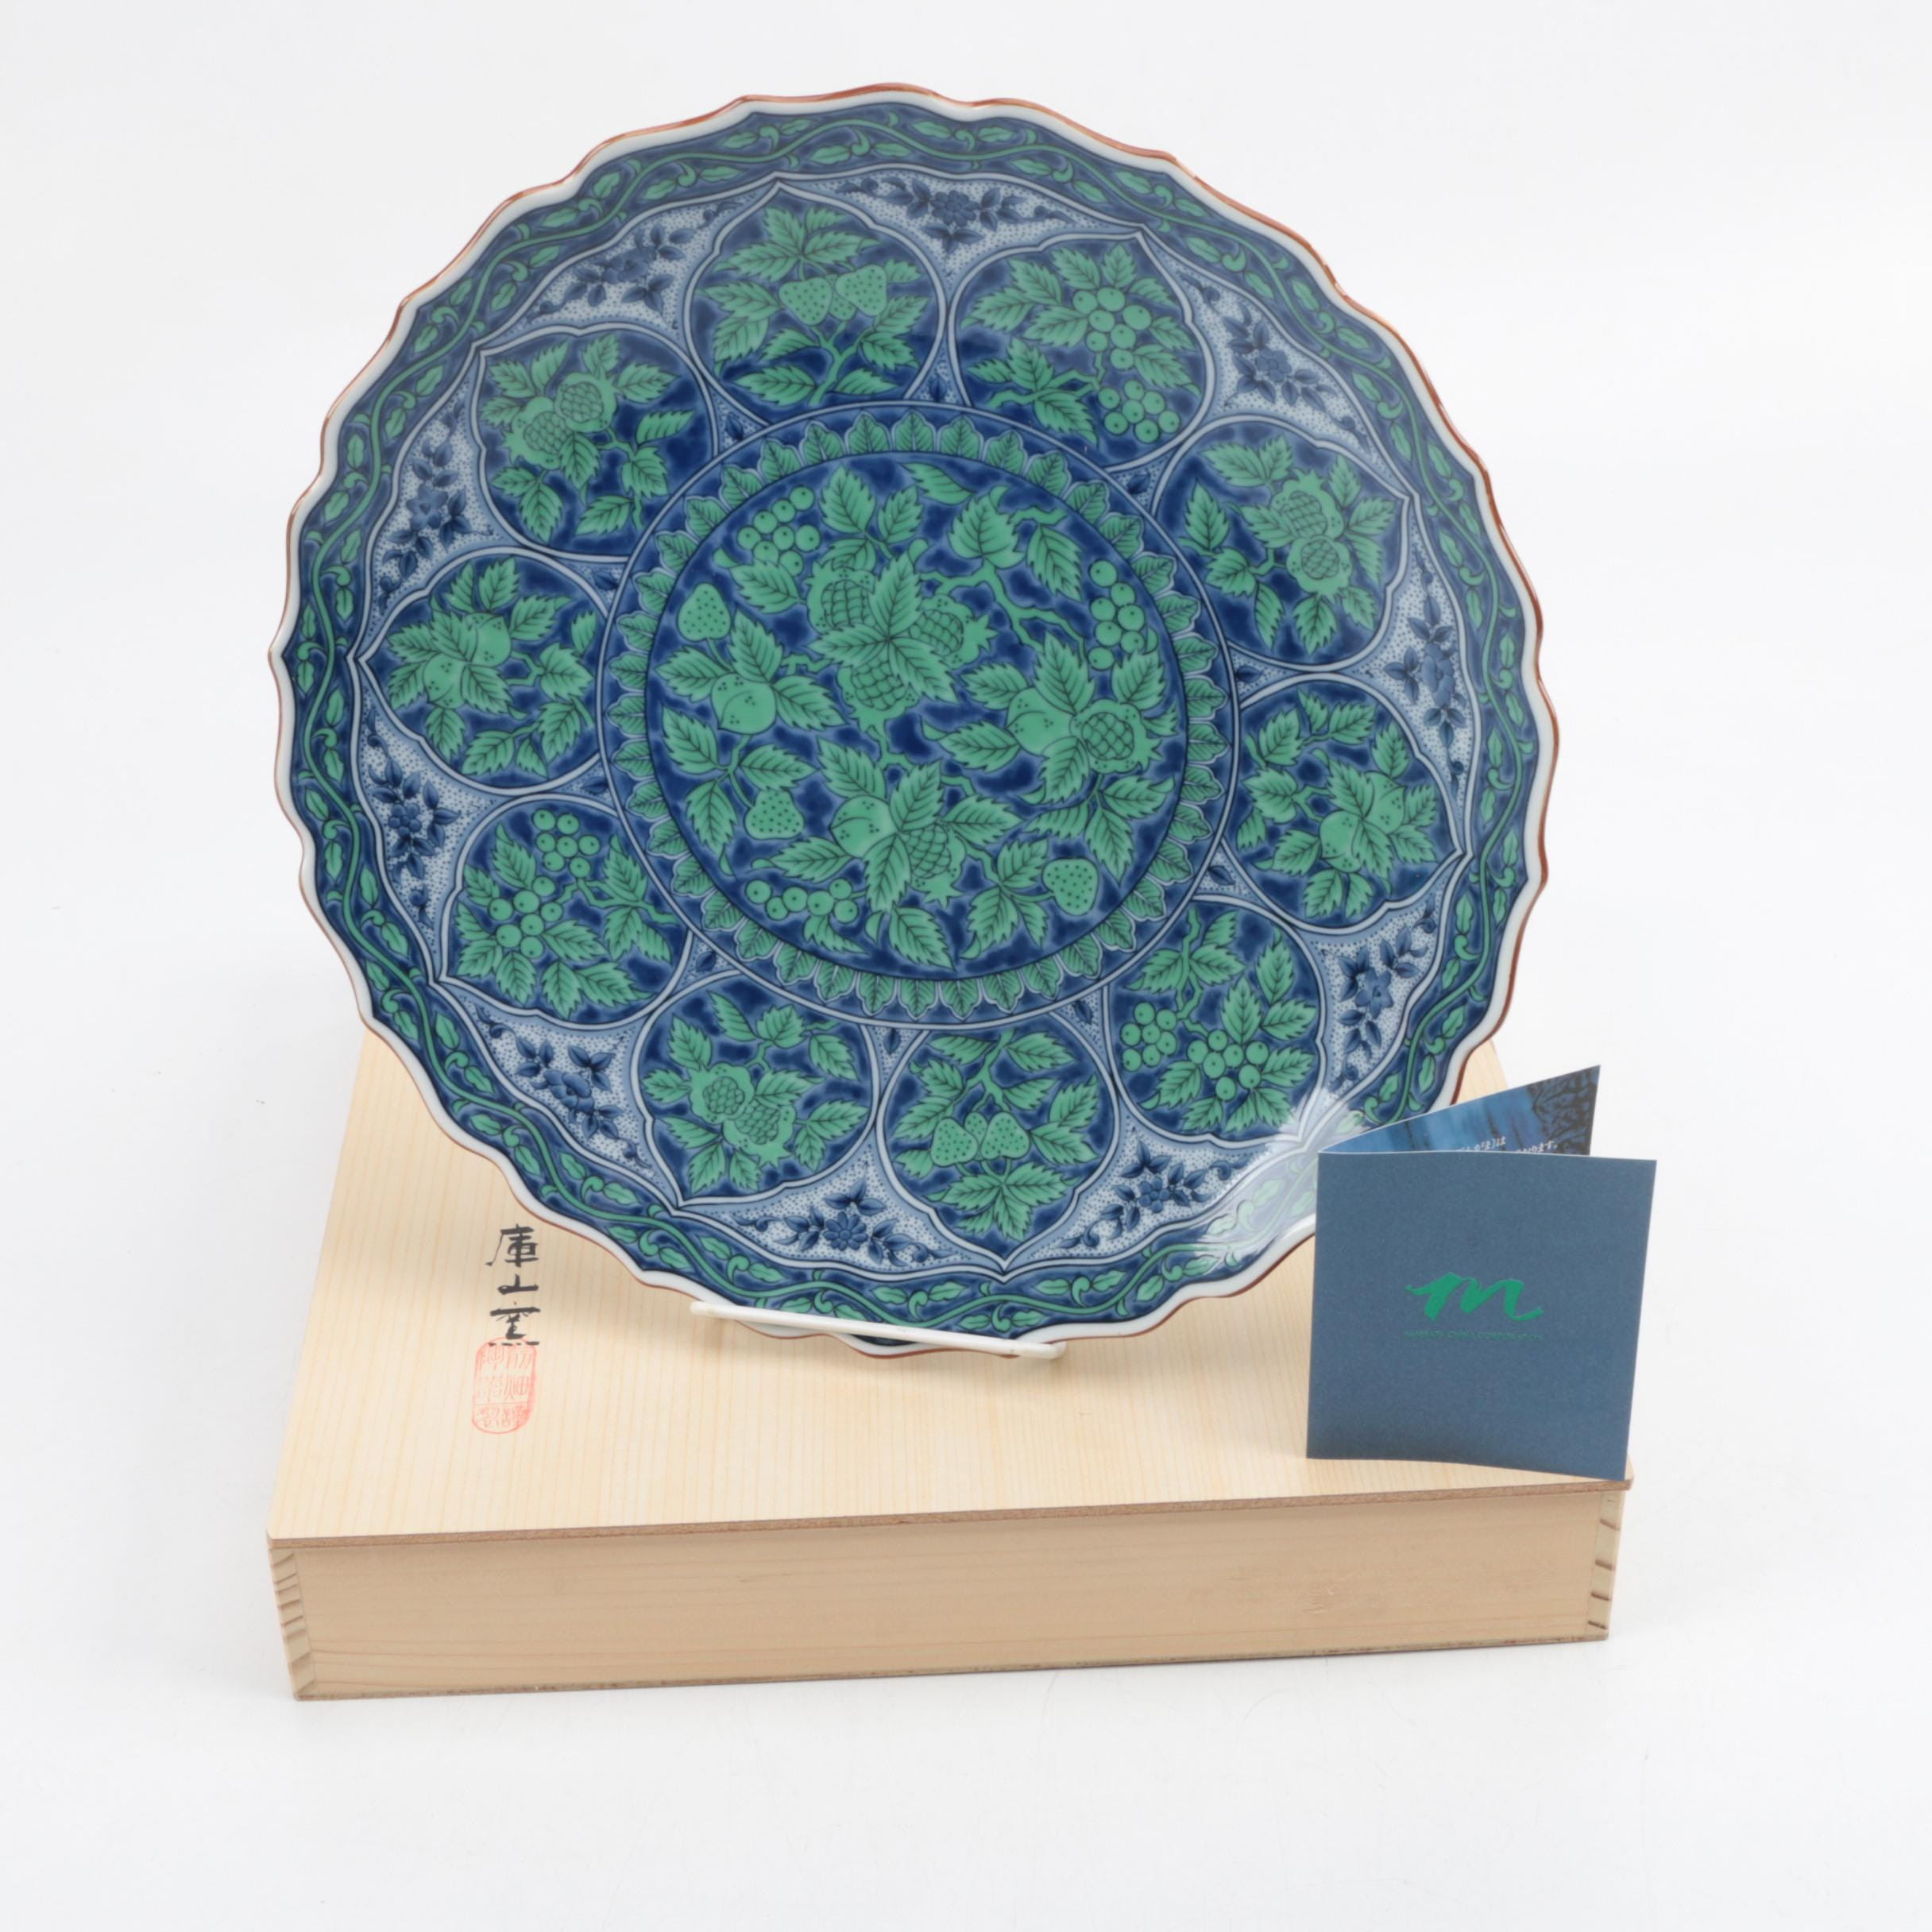 Japanese Porcelain Plate by Maebata